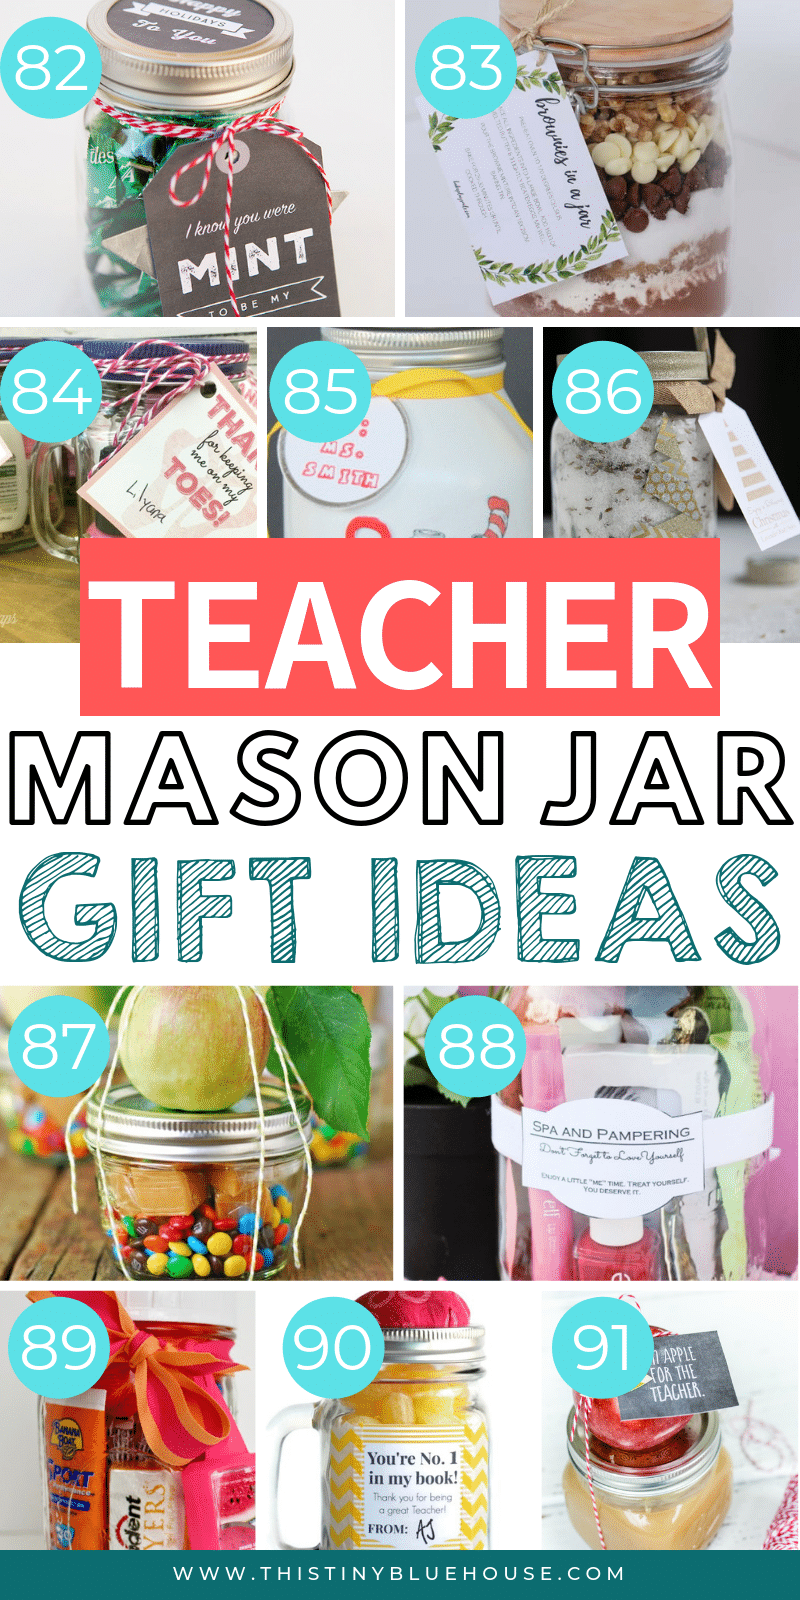 Are you looking for the perfect cute teacher appreciation gift to express your gratitude? Here are the absolute best cute mason jar teacher appreciation gifts. #teachergifts #teacherappreciationgifts #teachergiftsendofyear #teachergiftsdiy #easydiyteachergifts #homemadeteachergifts #uniqueteachergifts #giftsinajar